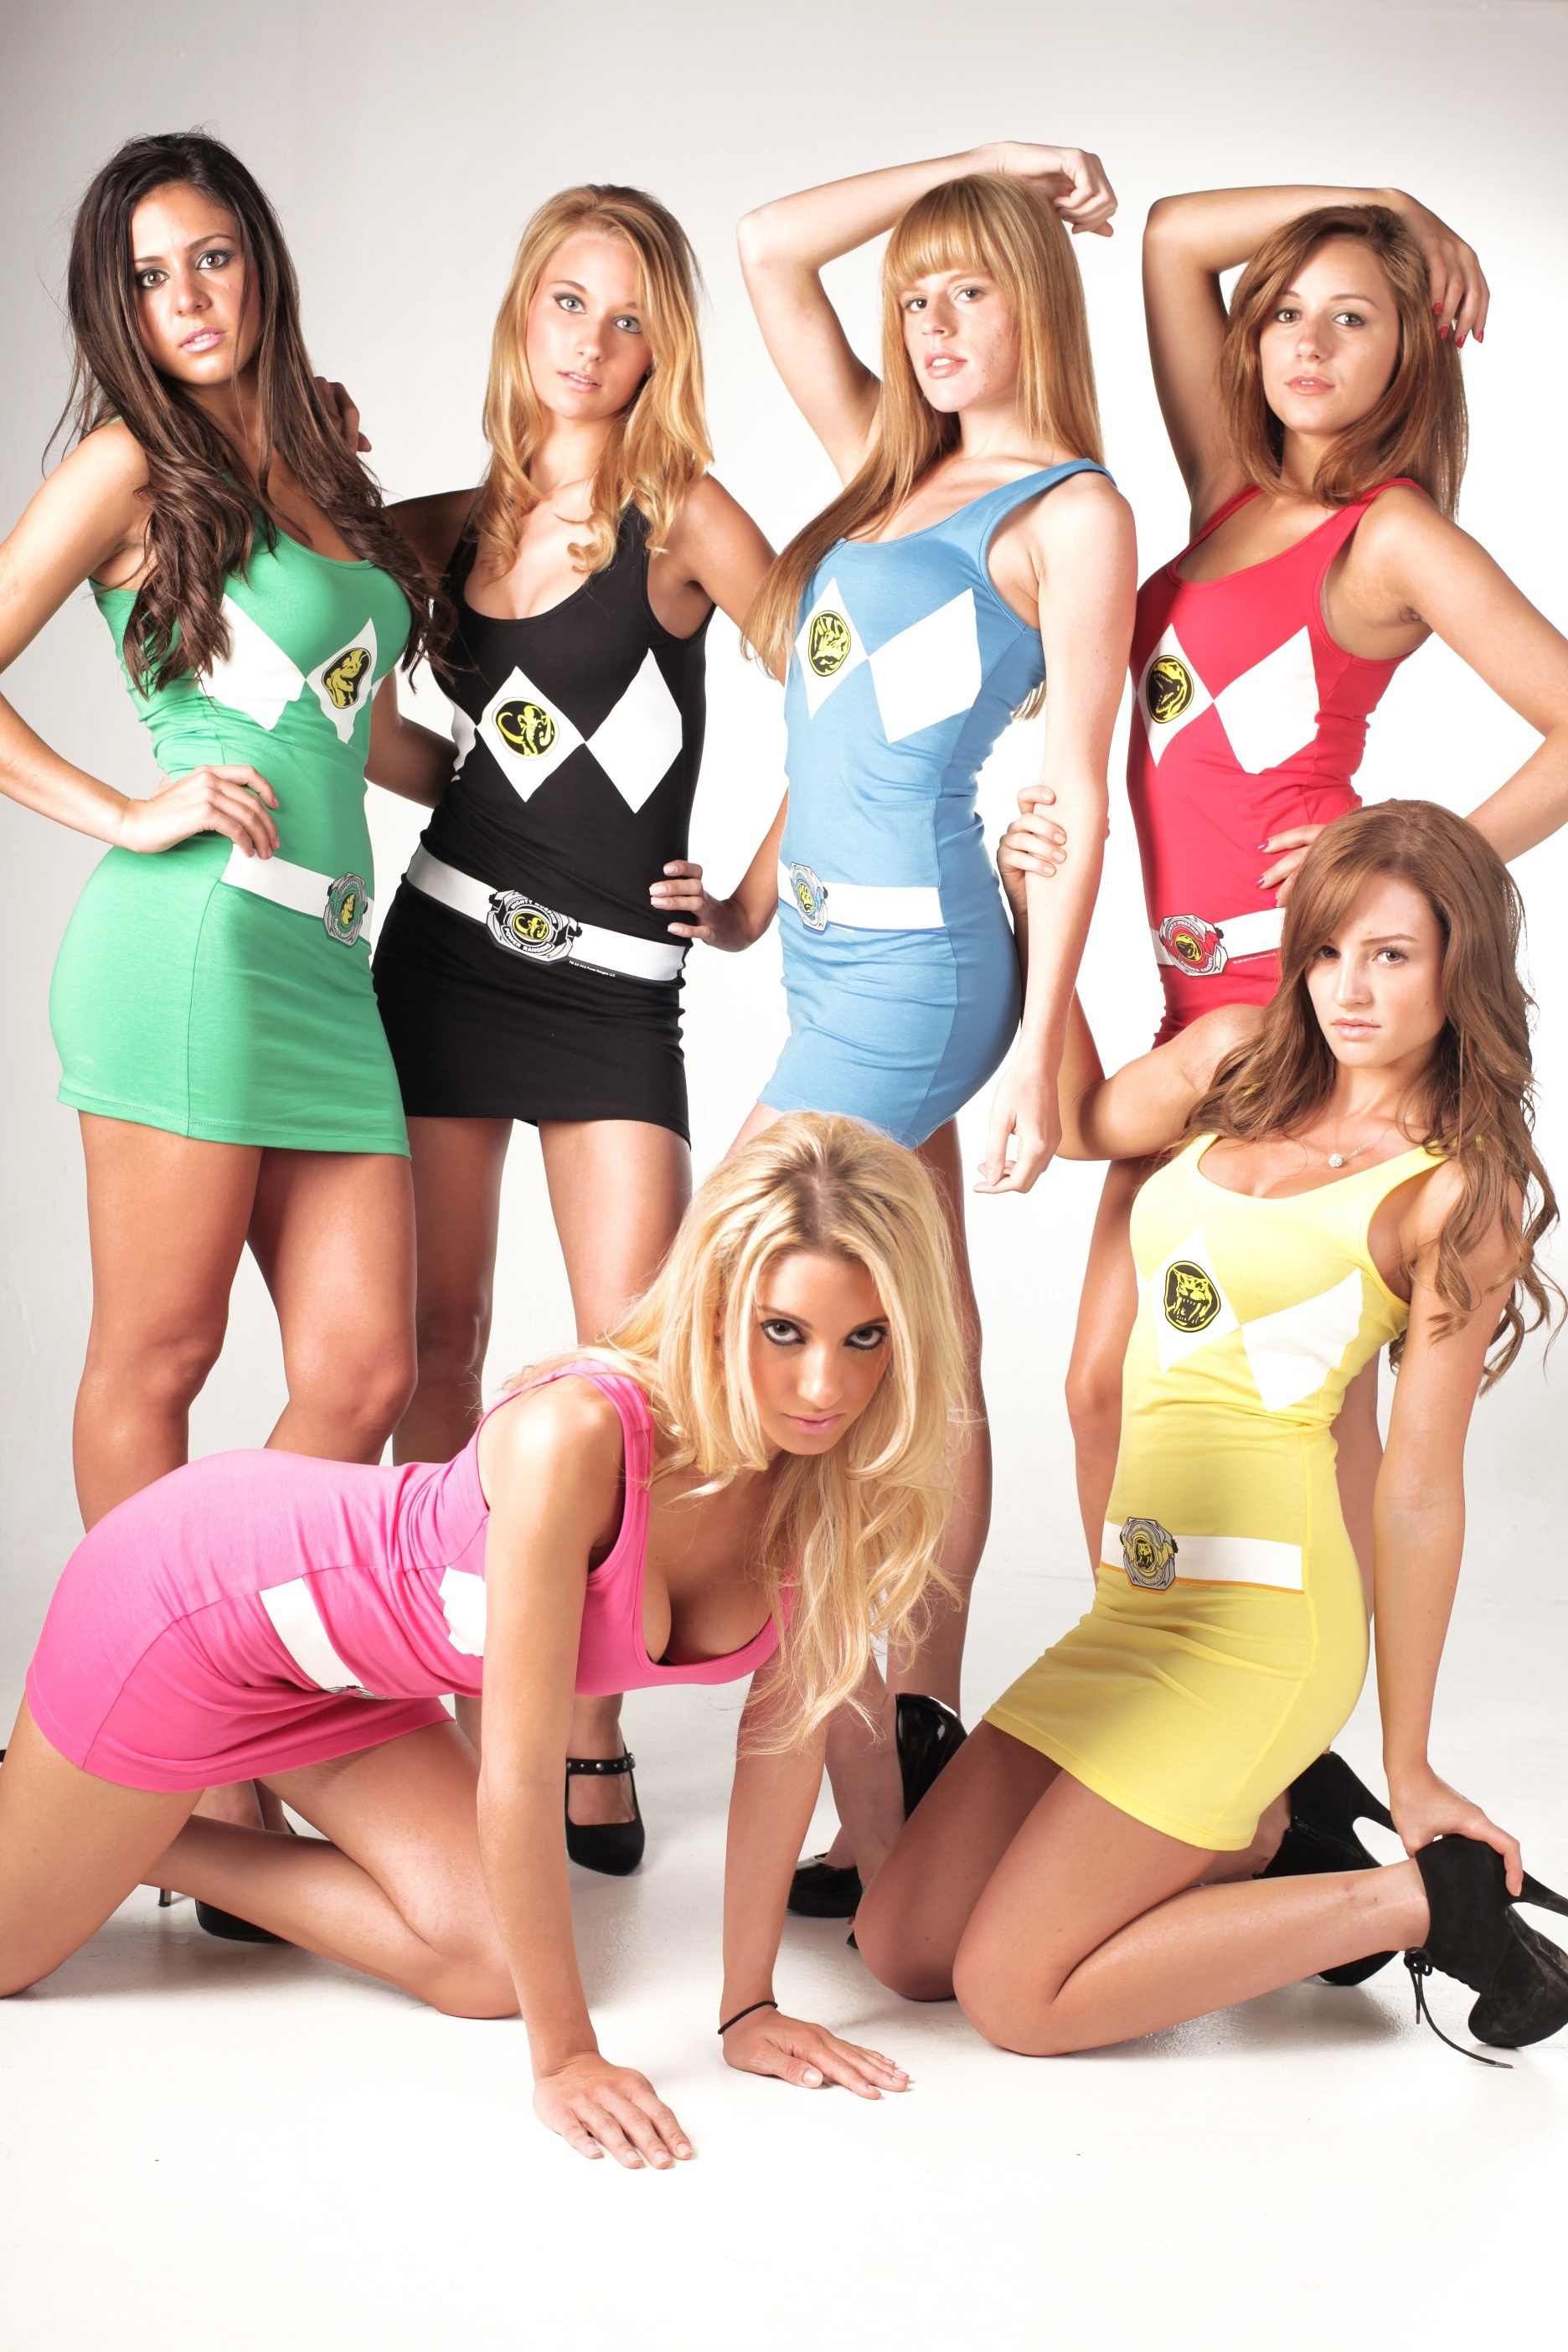 The sexy naked female power rangers think